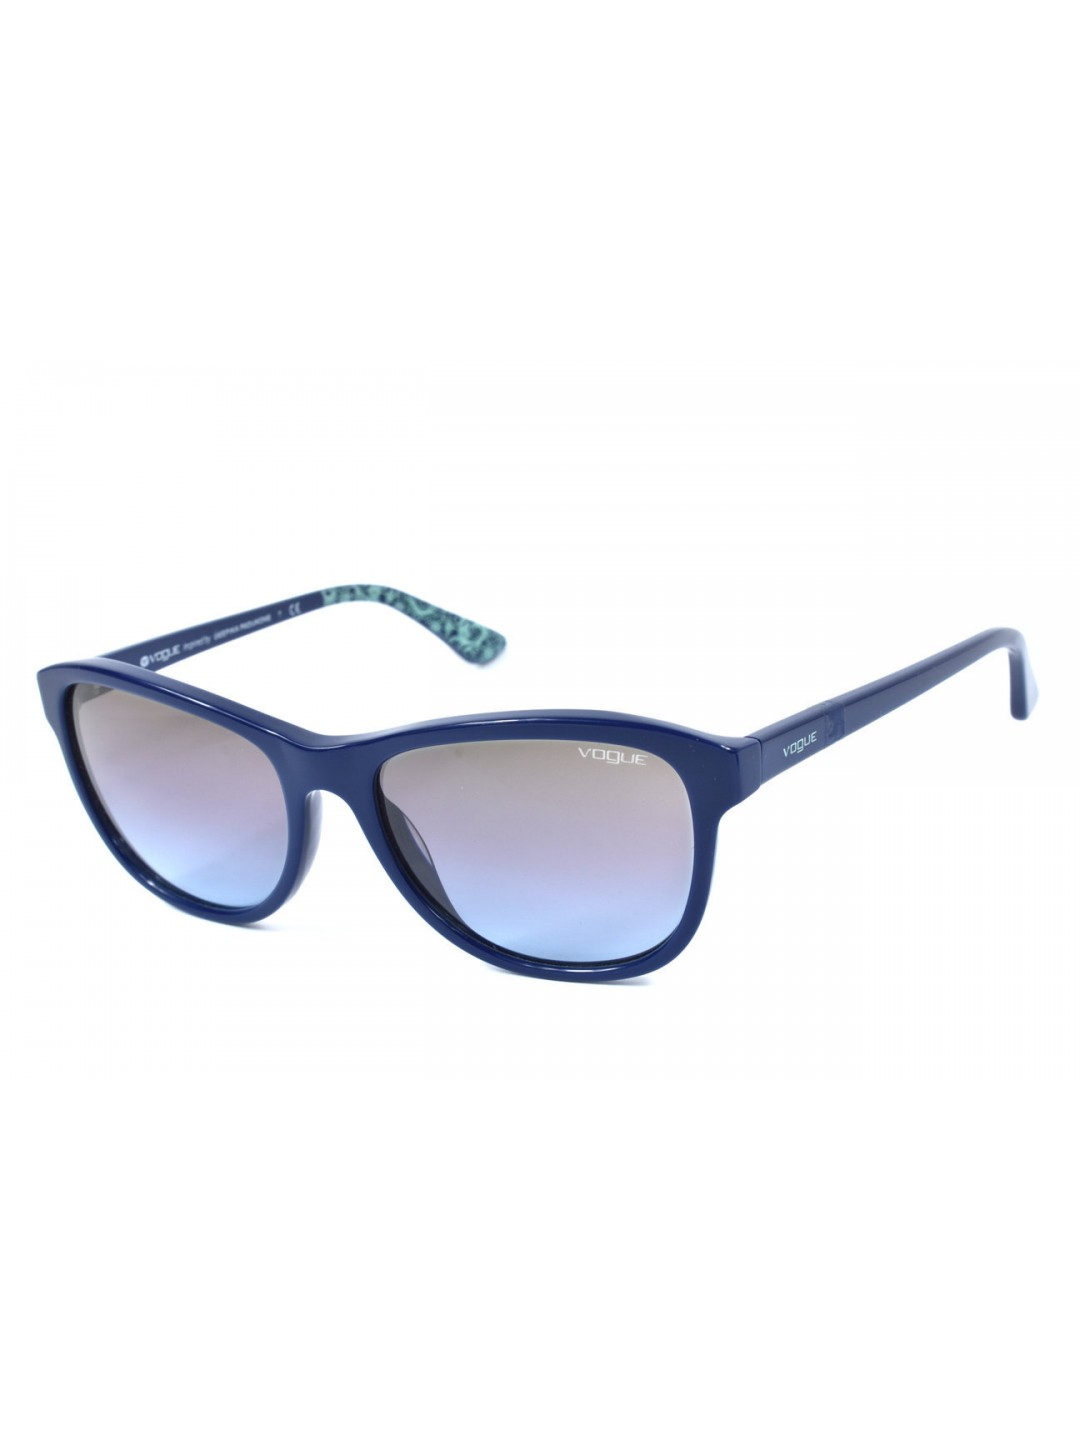 Vogue VO 5008-SI 2325/48 2N Navy Blue Cat Eye Full Frame With Acetate